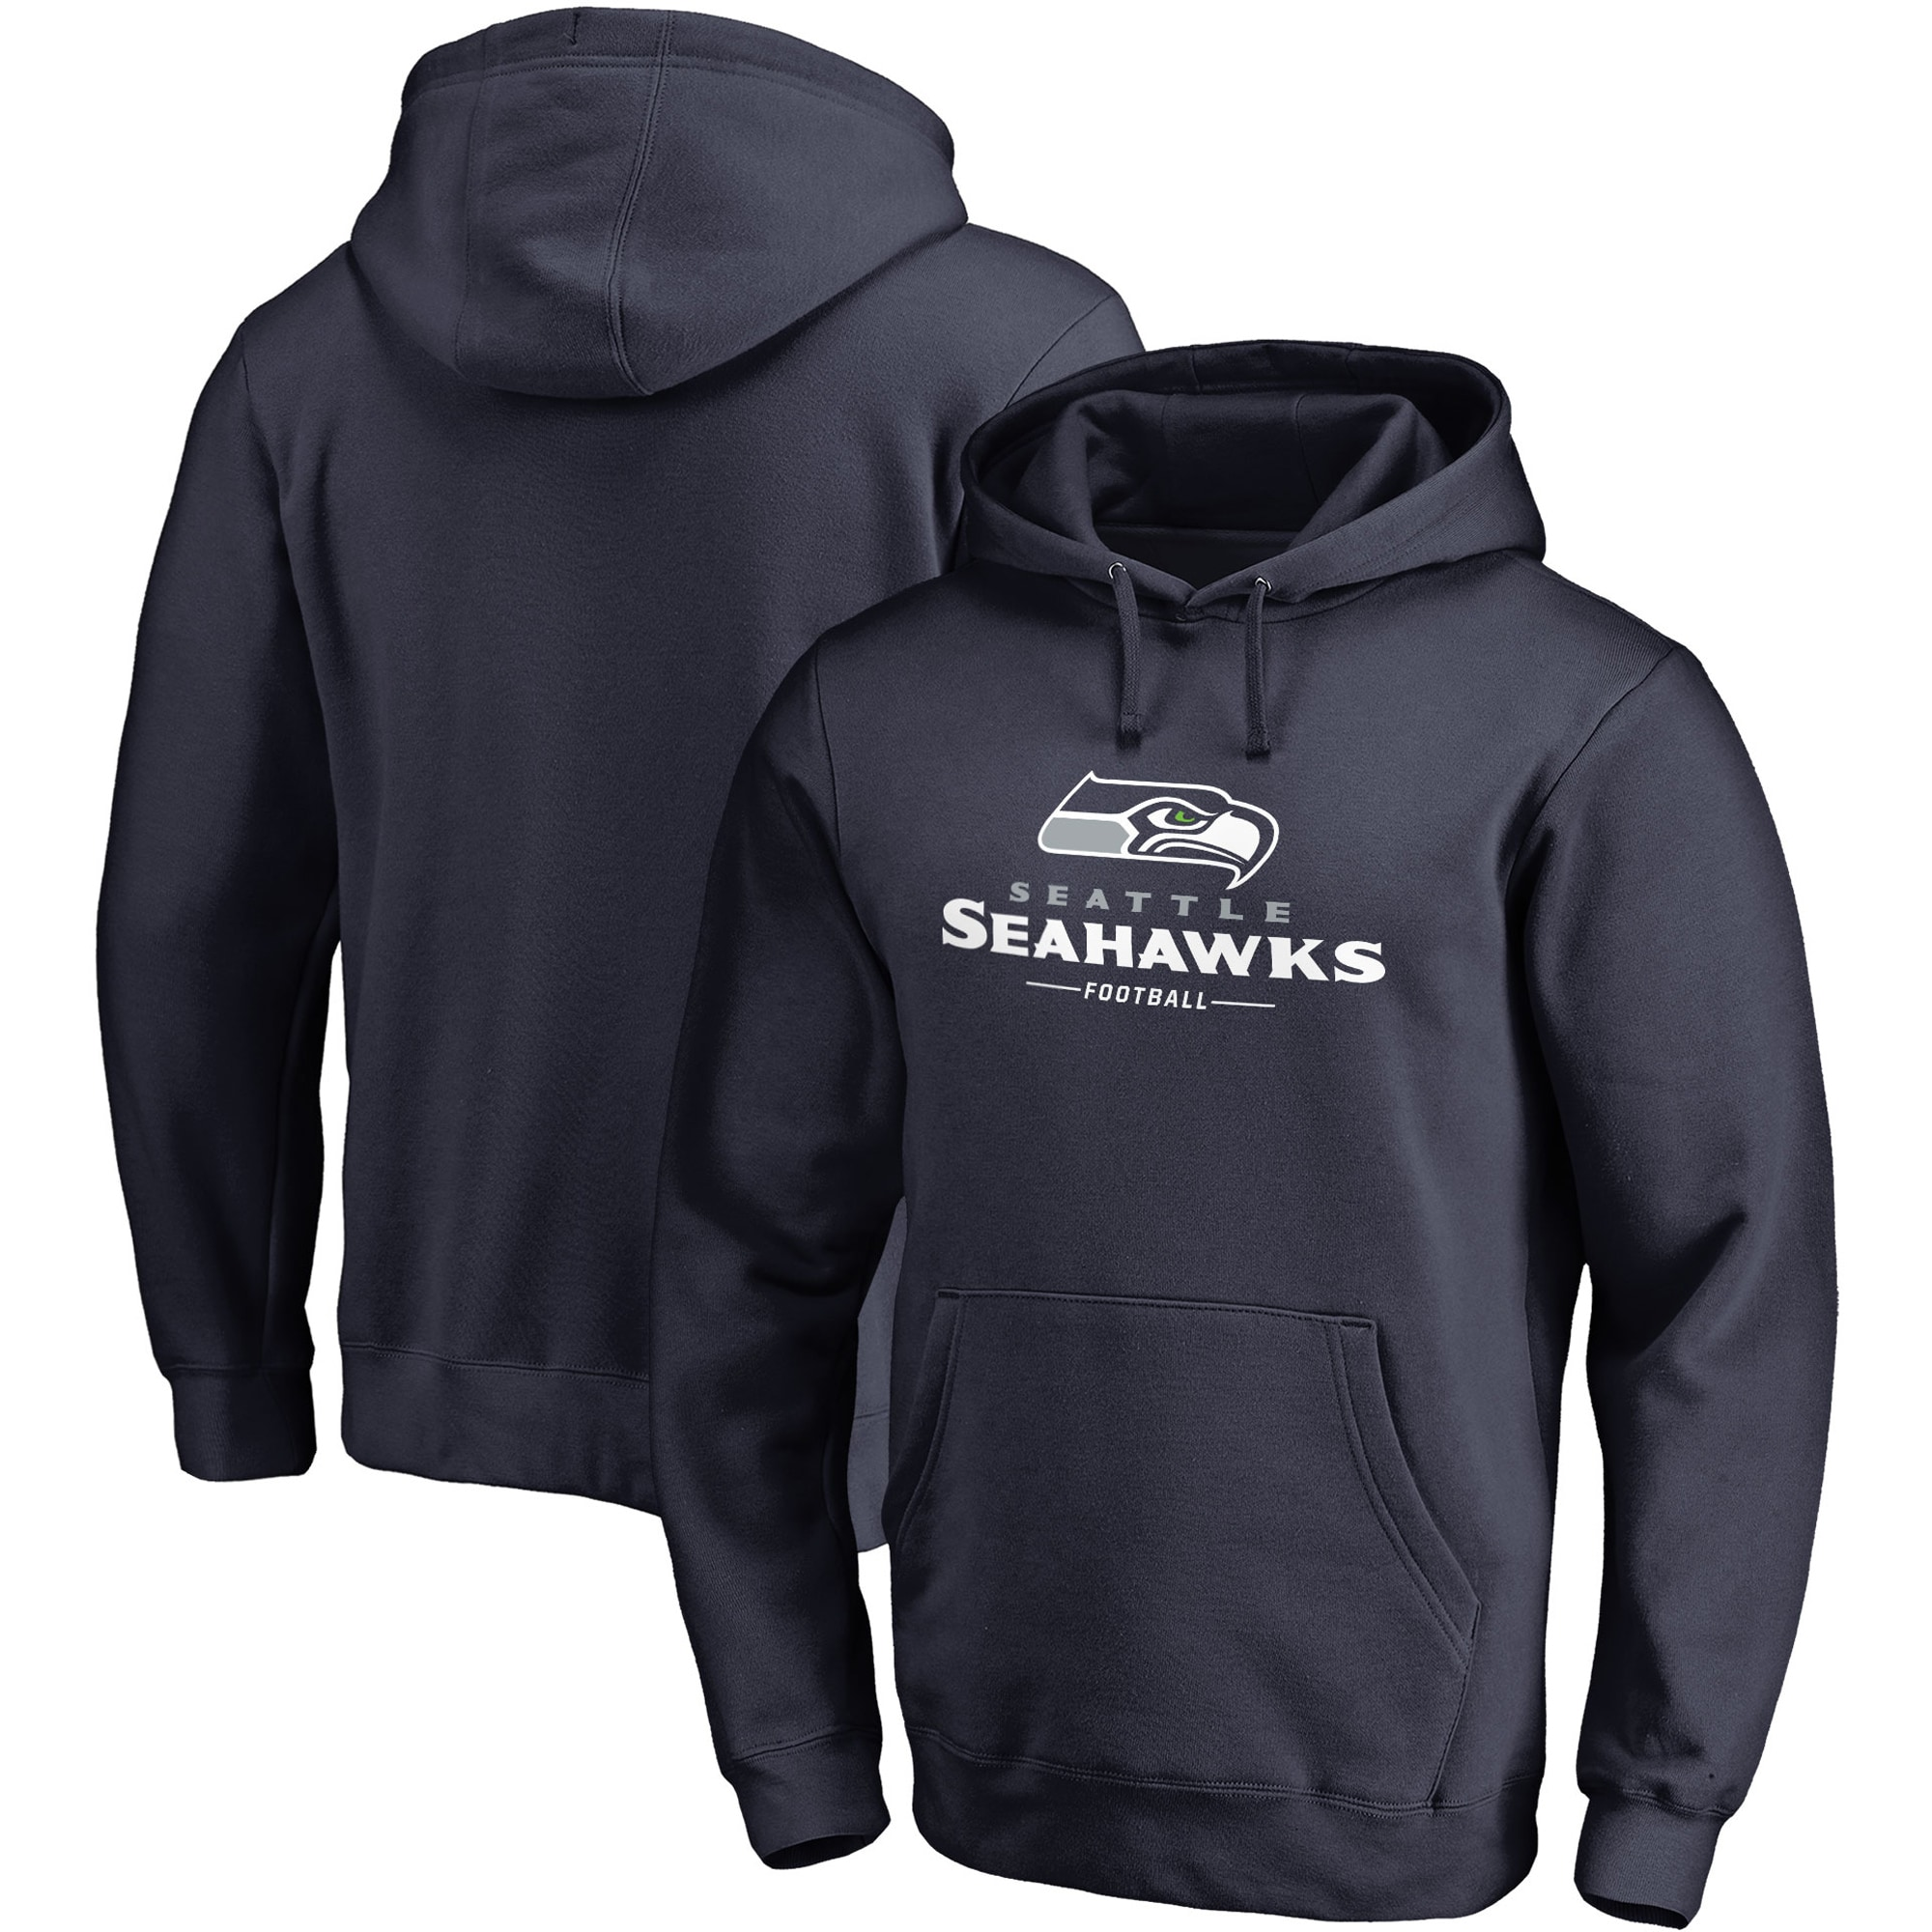 Seattle Seahawks NFL Pro Line Big & Tall Team Lockup Pullover Hoodie - College Navy